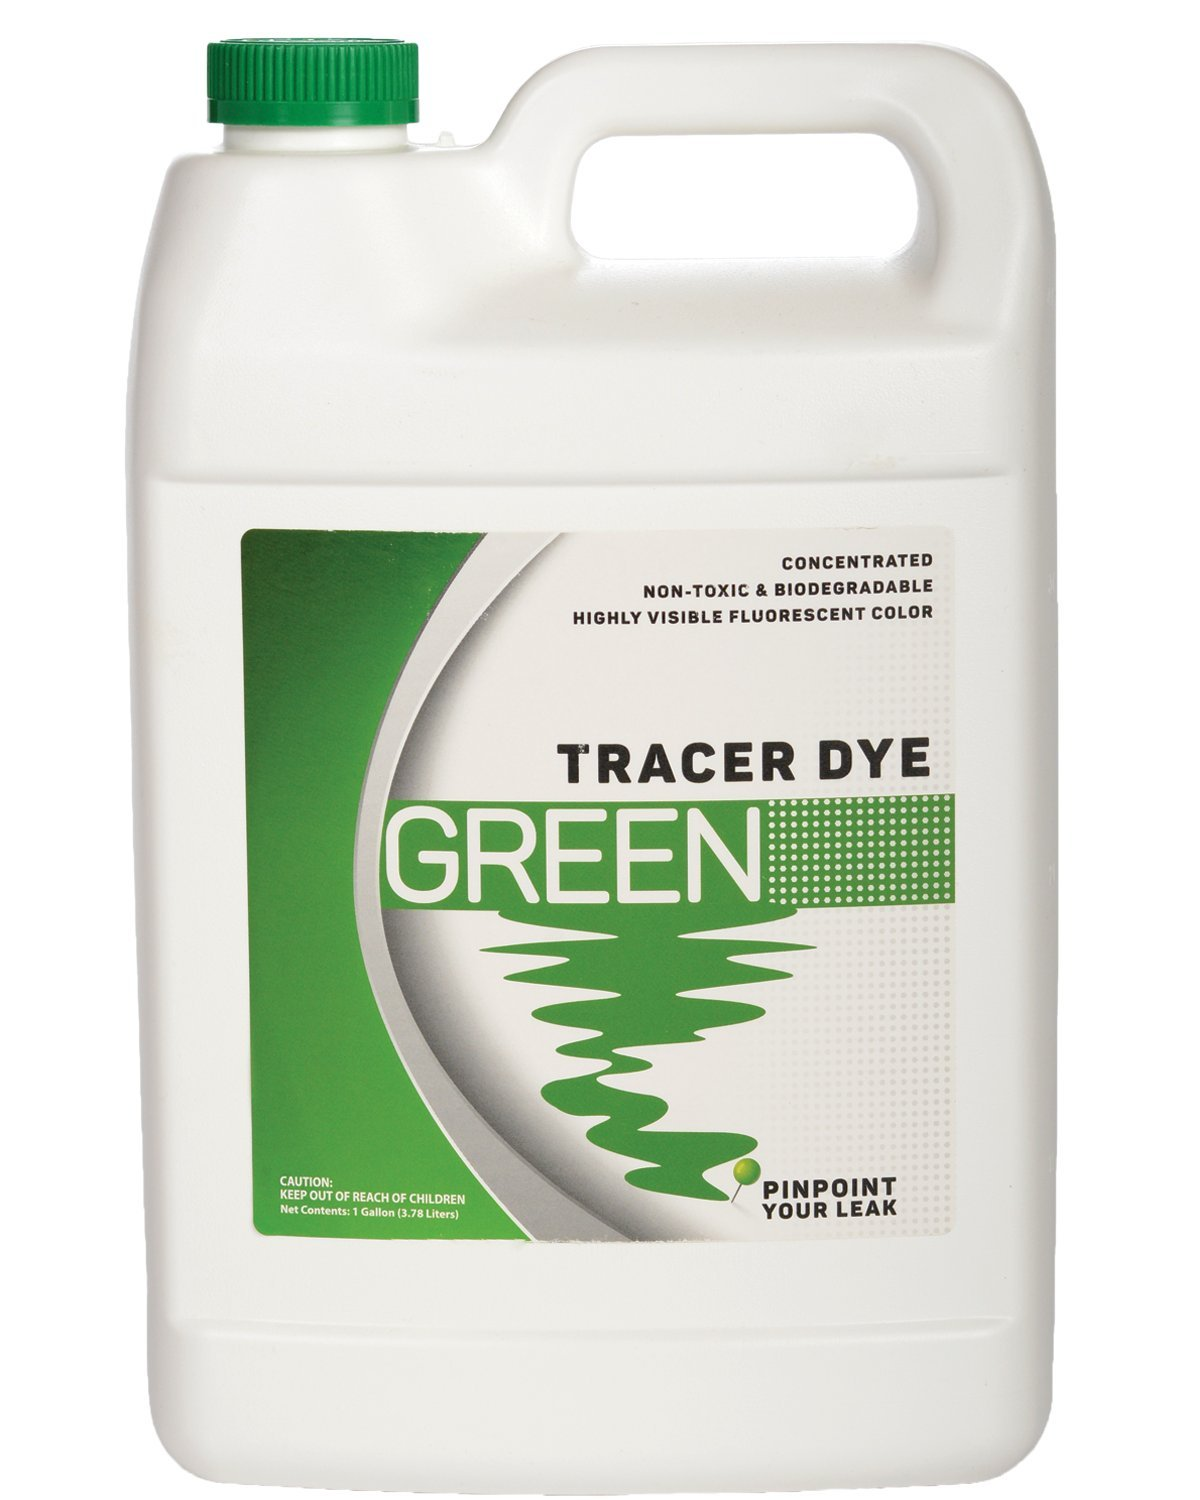 Green Tracing Dye - Highly Visible Concentrated Fluorescent Leak Detection Dye - 1 Gallon